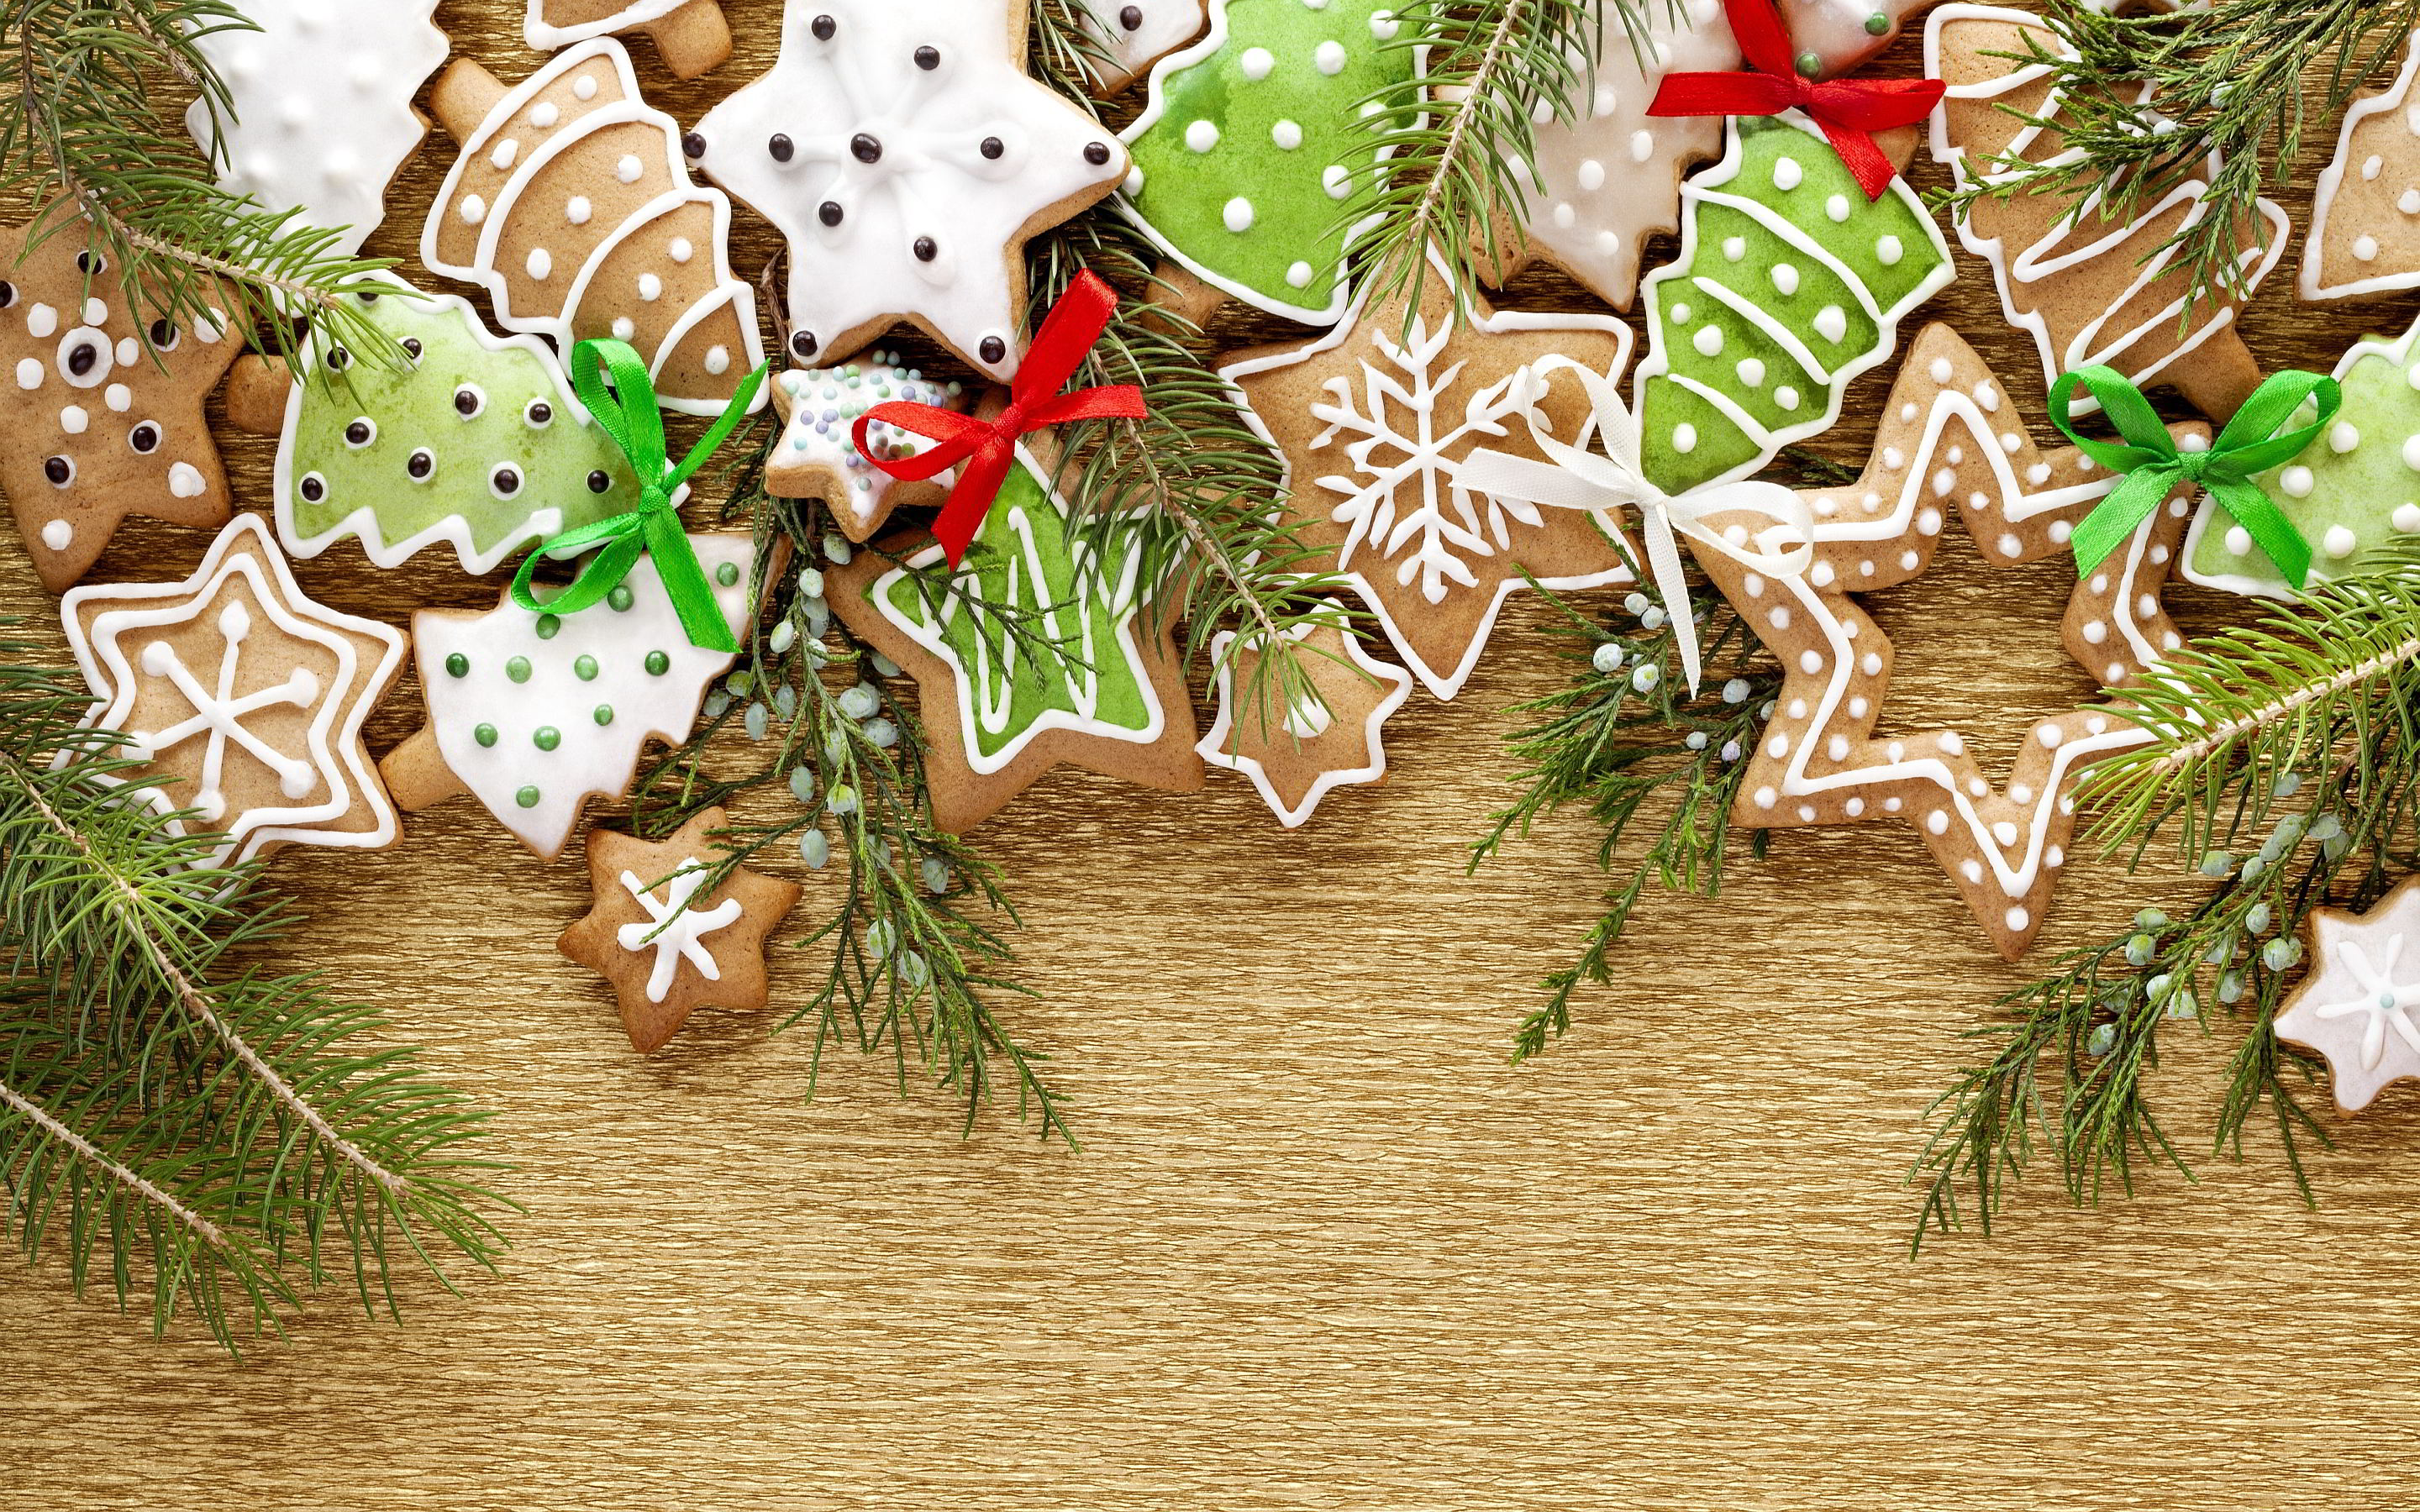 Xmas cookies Wallpapers Pictures Photos Images. «